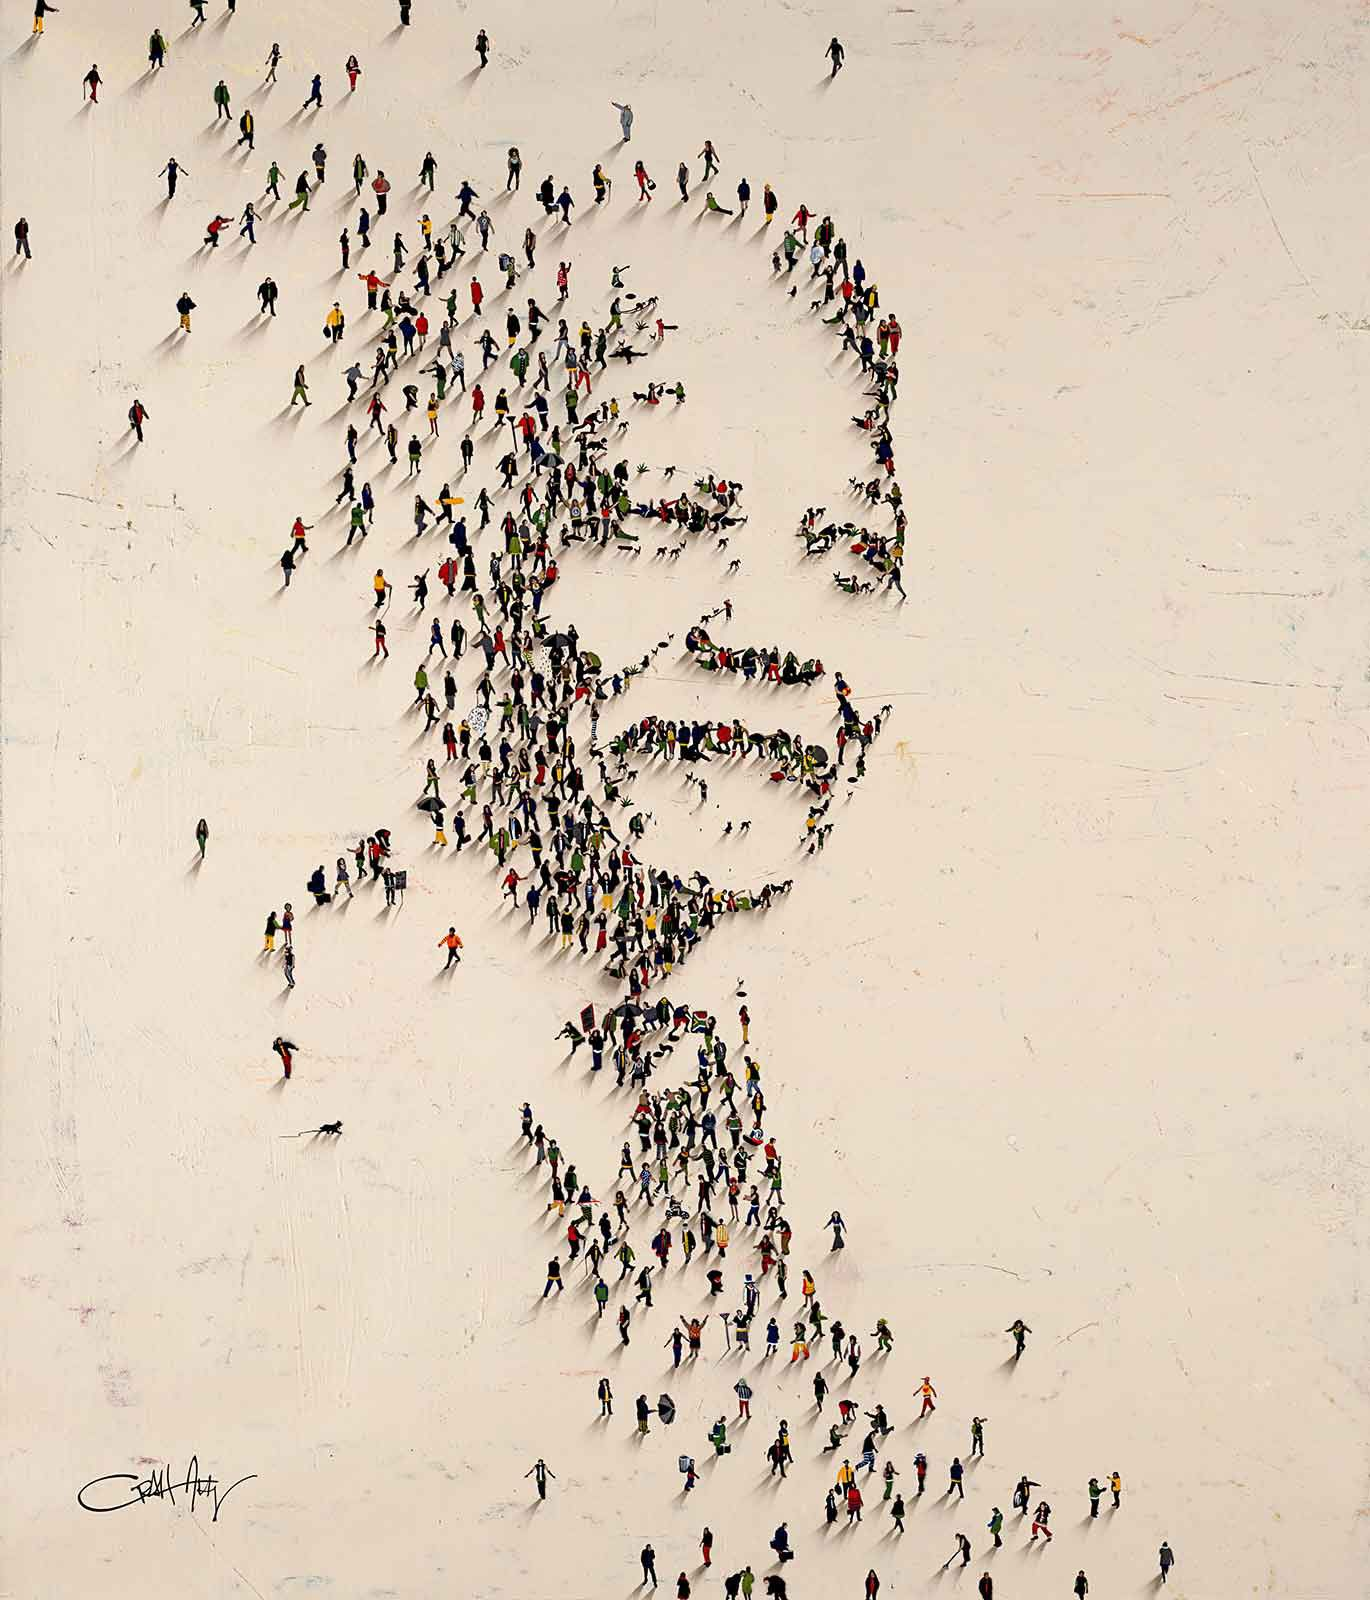 a6a6e6e67b0 Pixel People  Images Formed by Thousands of Humans